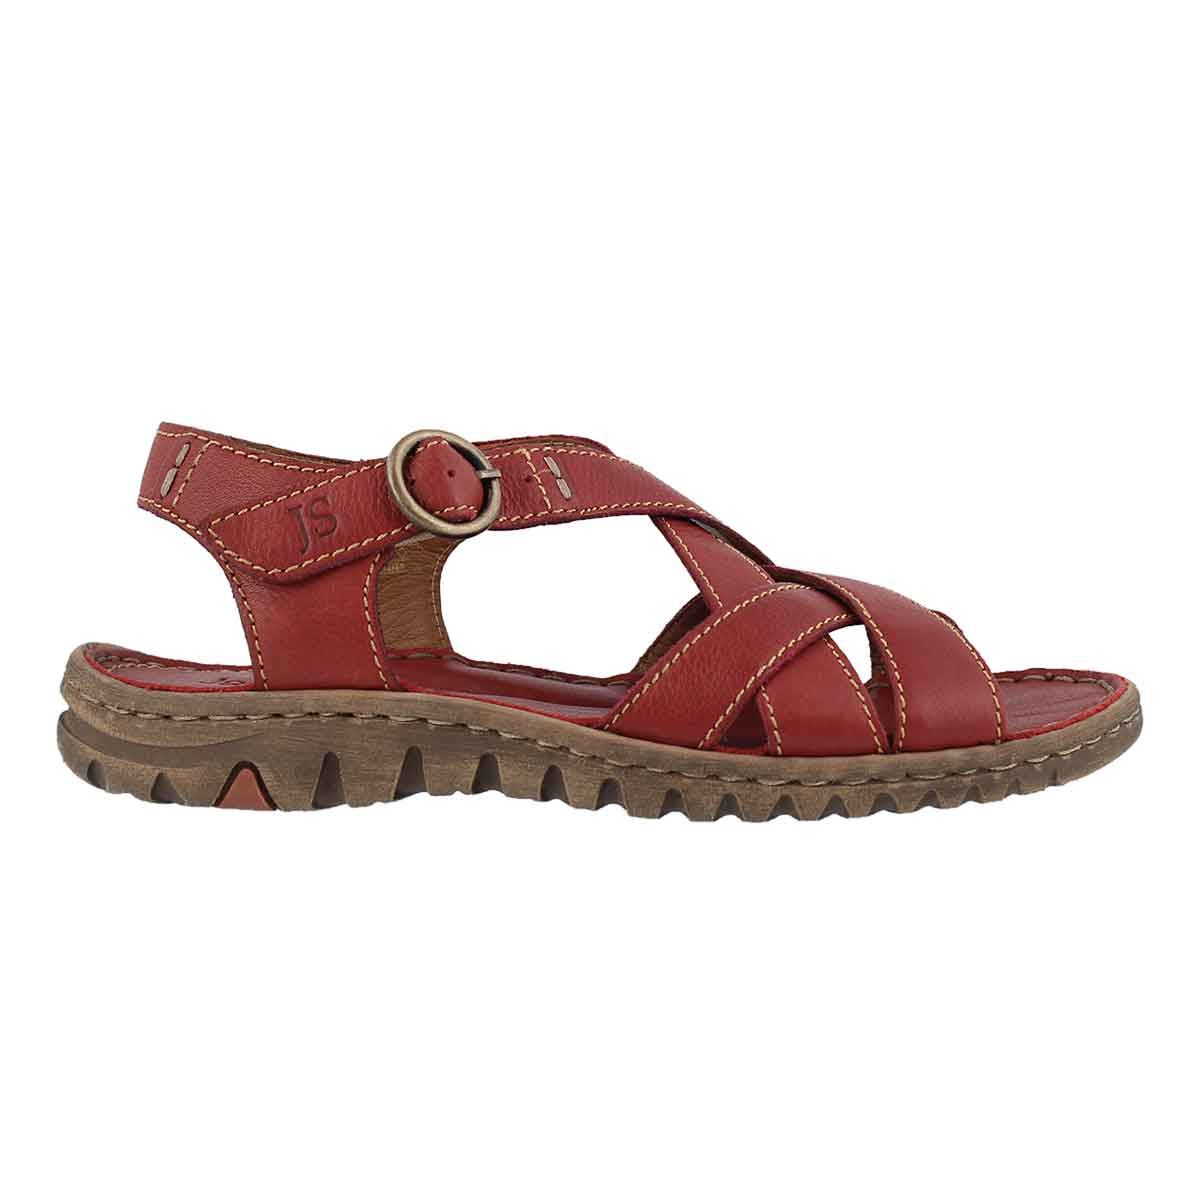 Lds Lucia 01 red casual sandal